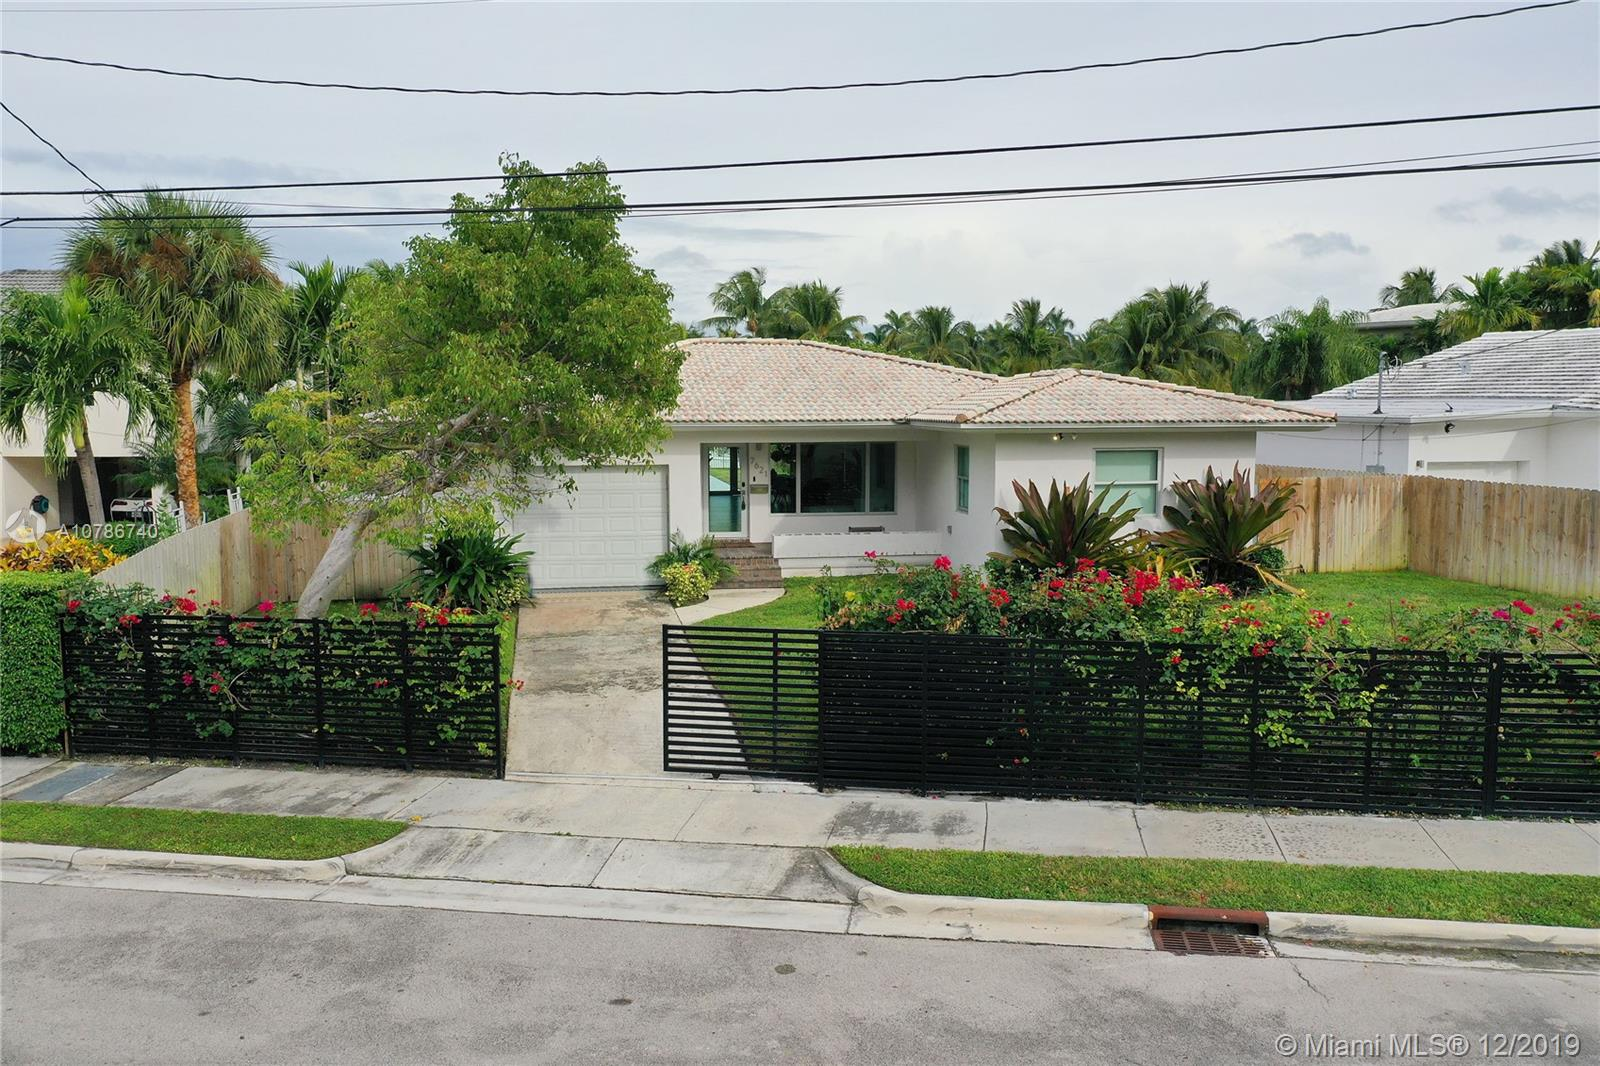 7621 NE 8th Ave, Miami Shores, Florida